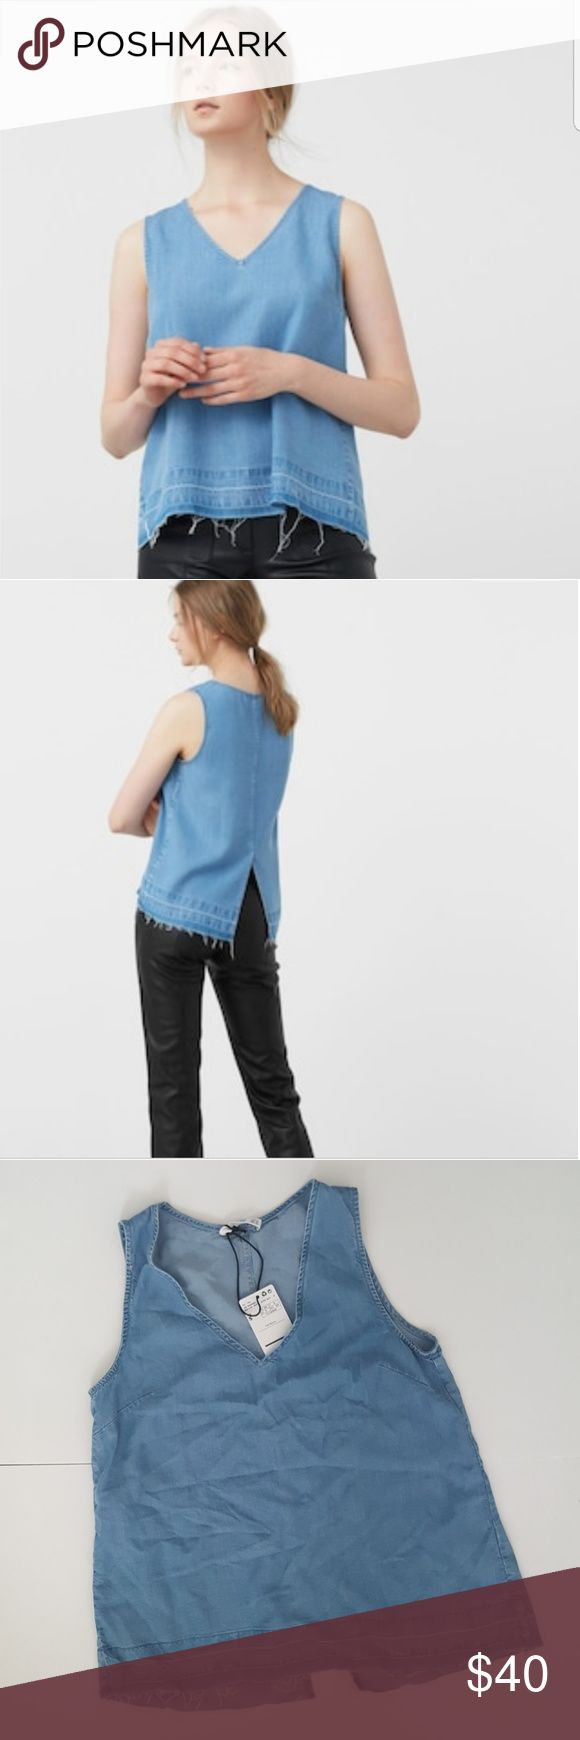 "Mango Chambray Denim Megan Top Lightweight sleeveless top with V neckline, raw hem, and vented back. Bust 17""  Length approximately 23 1/2"" 100% lyocell Mango Tops"